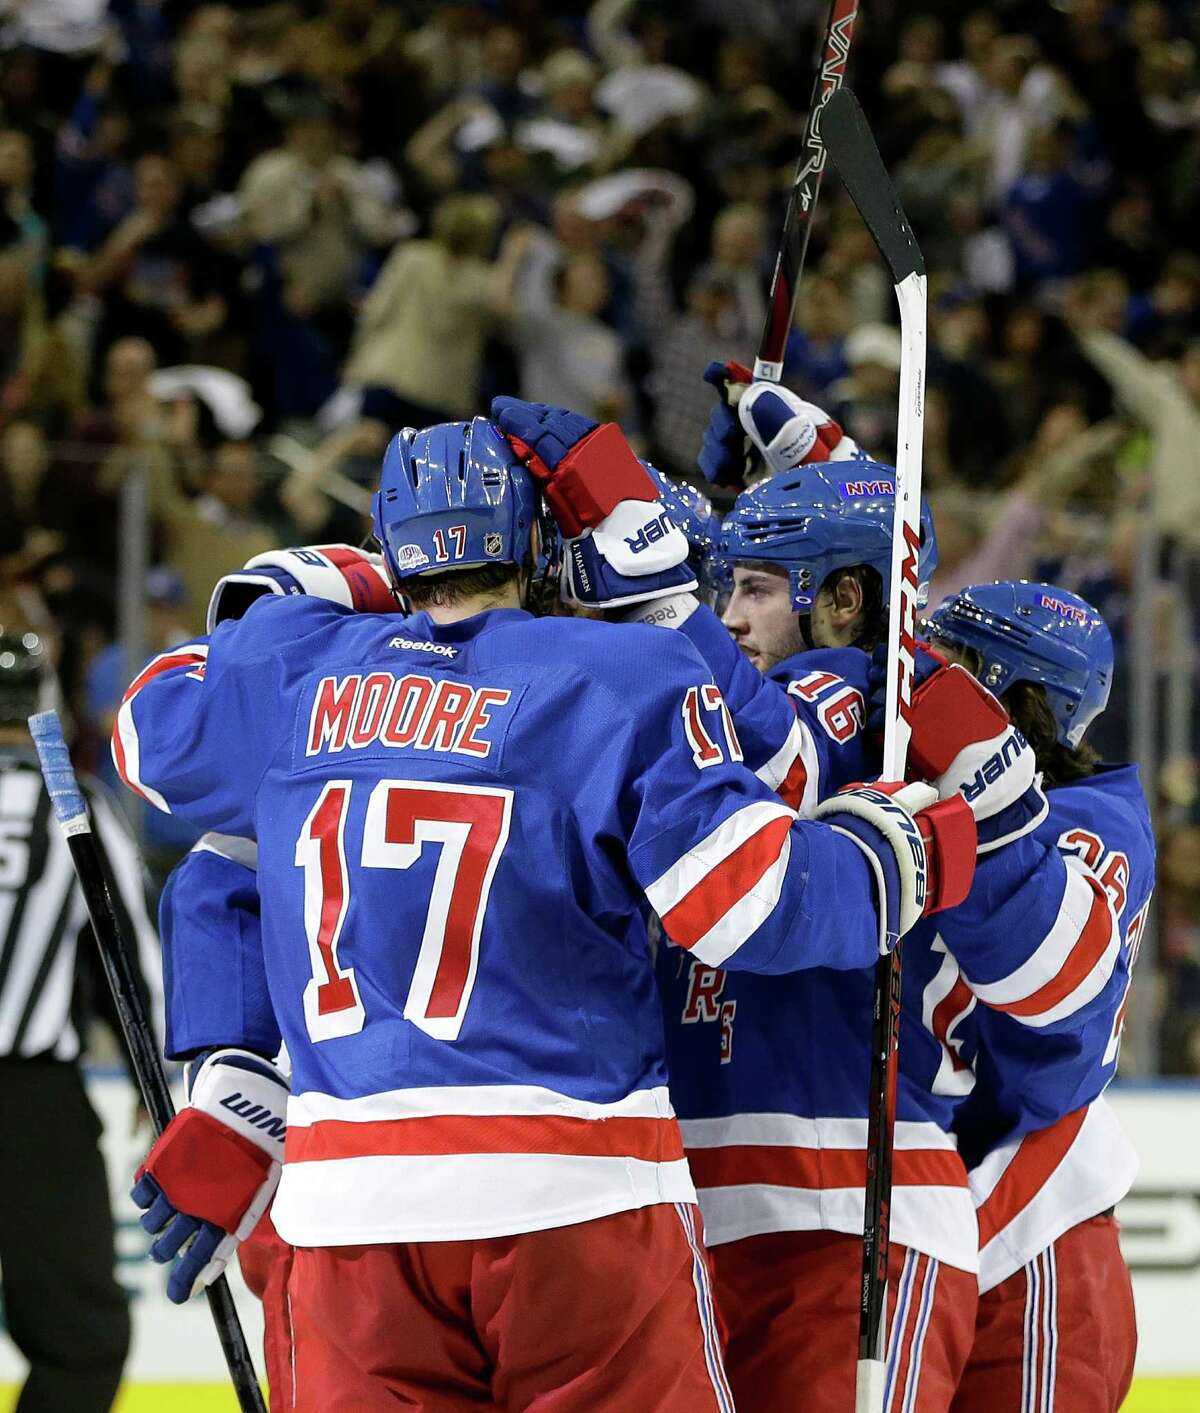 New York Rangers celebrate with teammate Derick Brassard (16) who scored the only goal in the second period of Game 6 of their NHL Stanley Cup hockey playoff series against the Washington Capitals in New York, Sunday, May 12, 2013. The Rangers shut out the Capitals to force a Game 7 in Washington, Monday.